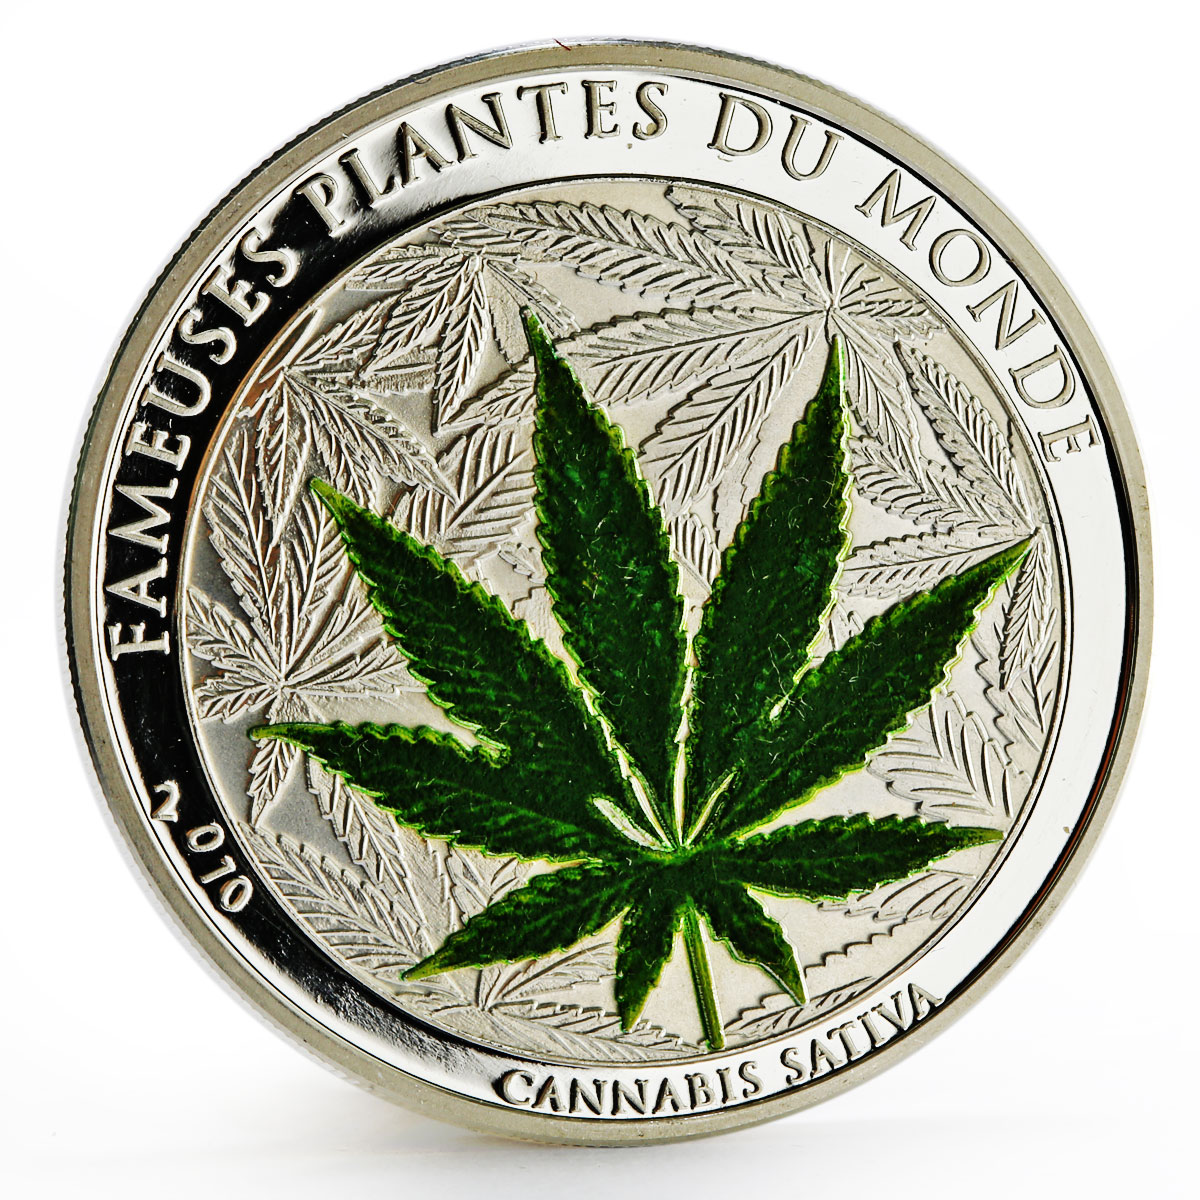 Benin 1000 francs Famous World Plants series Cannabis Sativa silver coin 2010